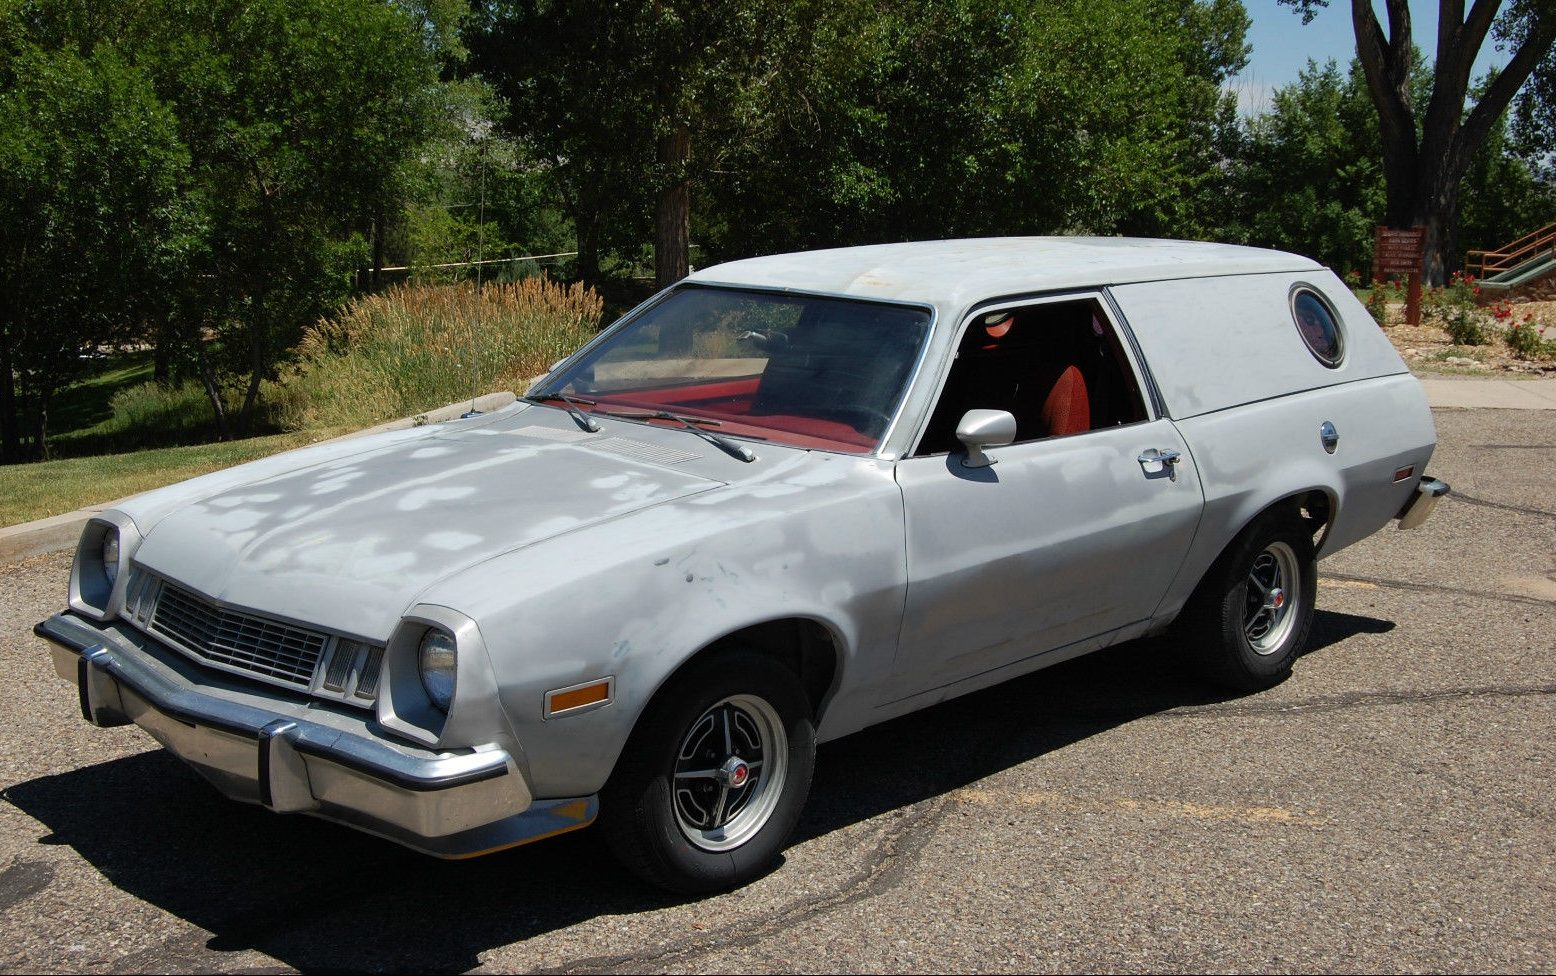 Needs Decals: Ford Pinto Cruising Wagon